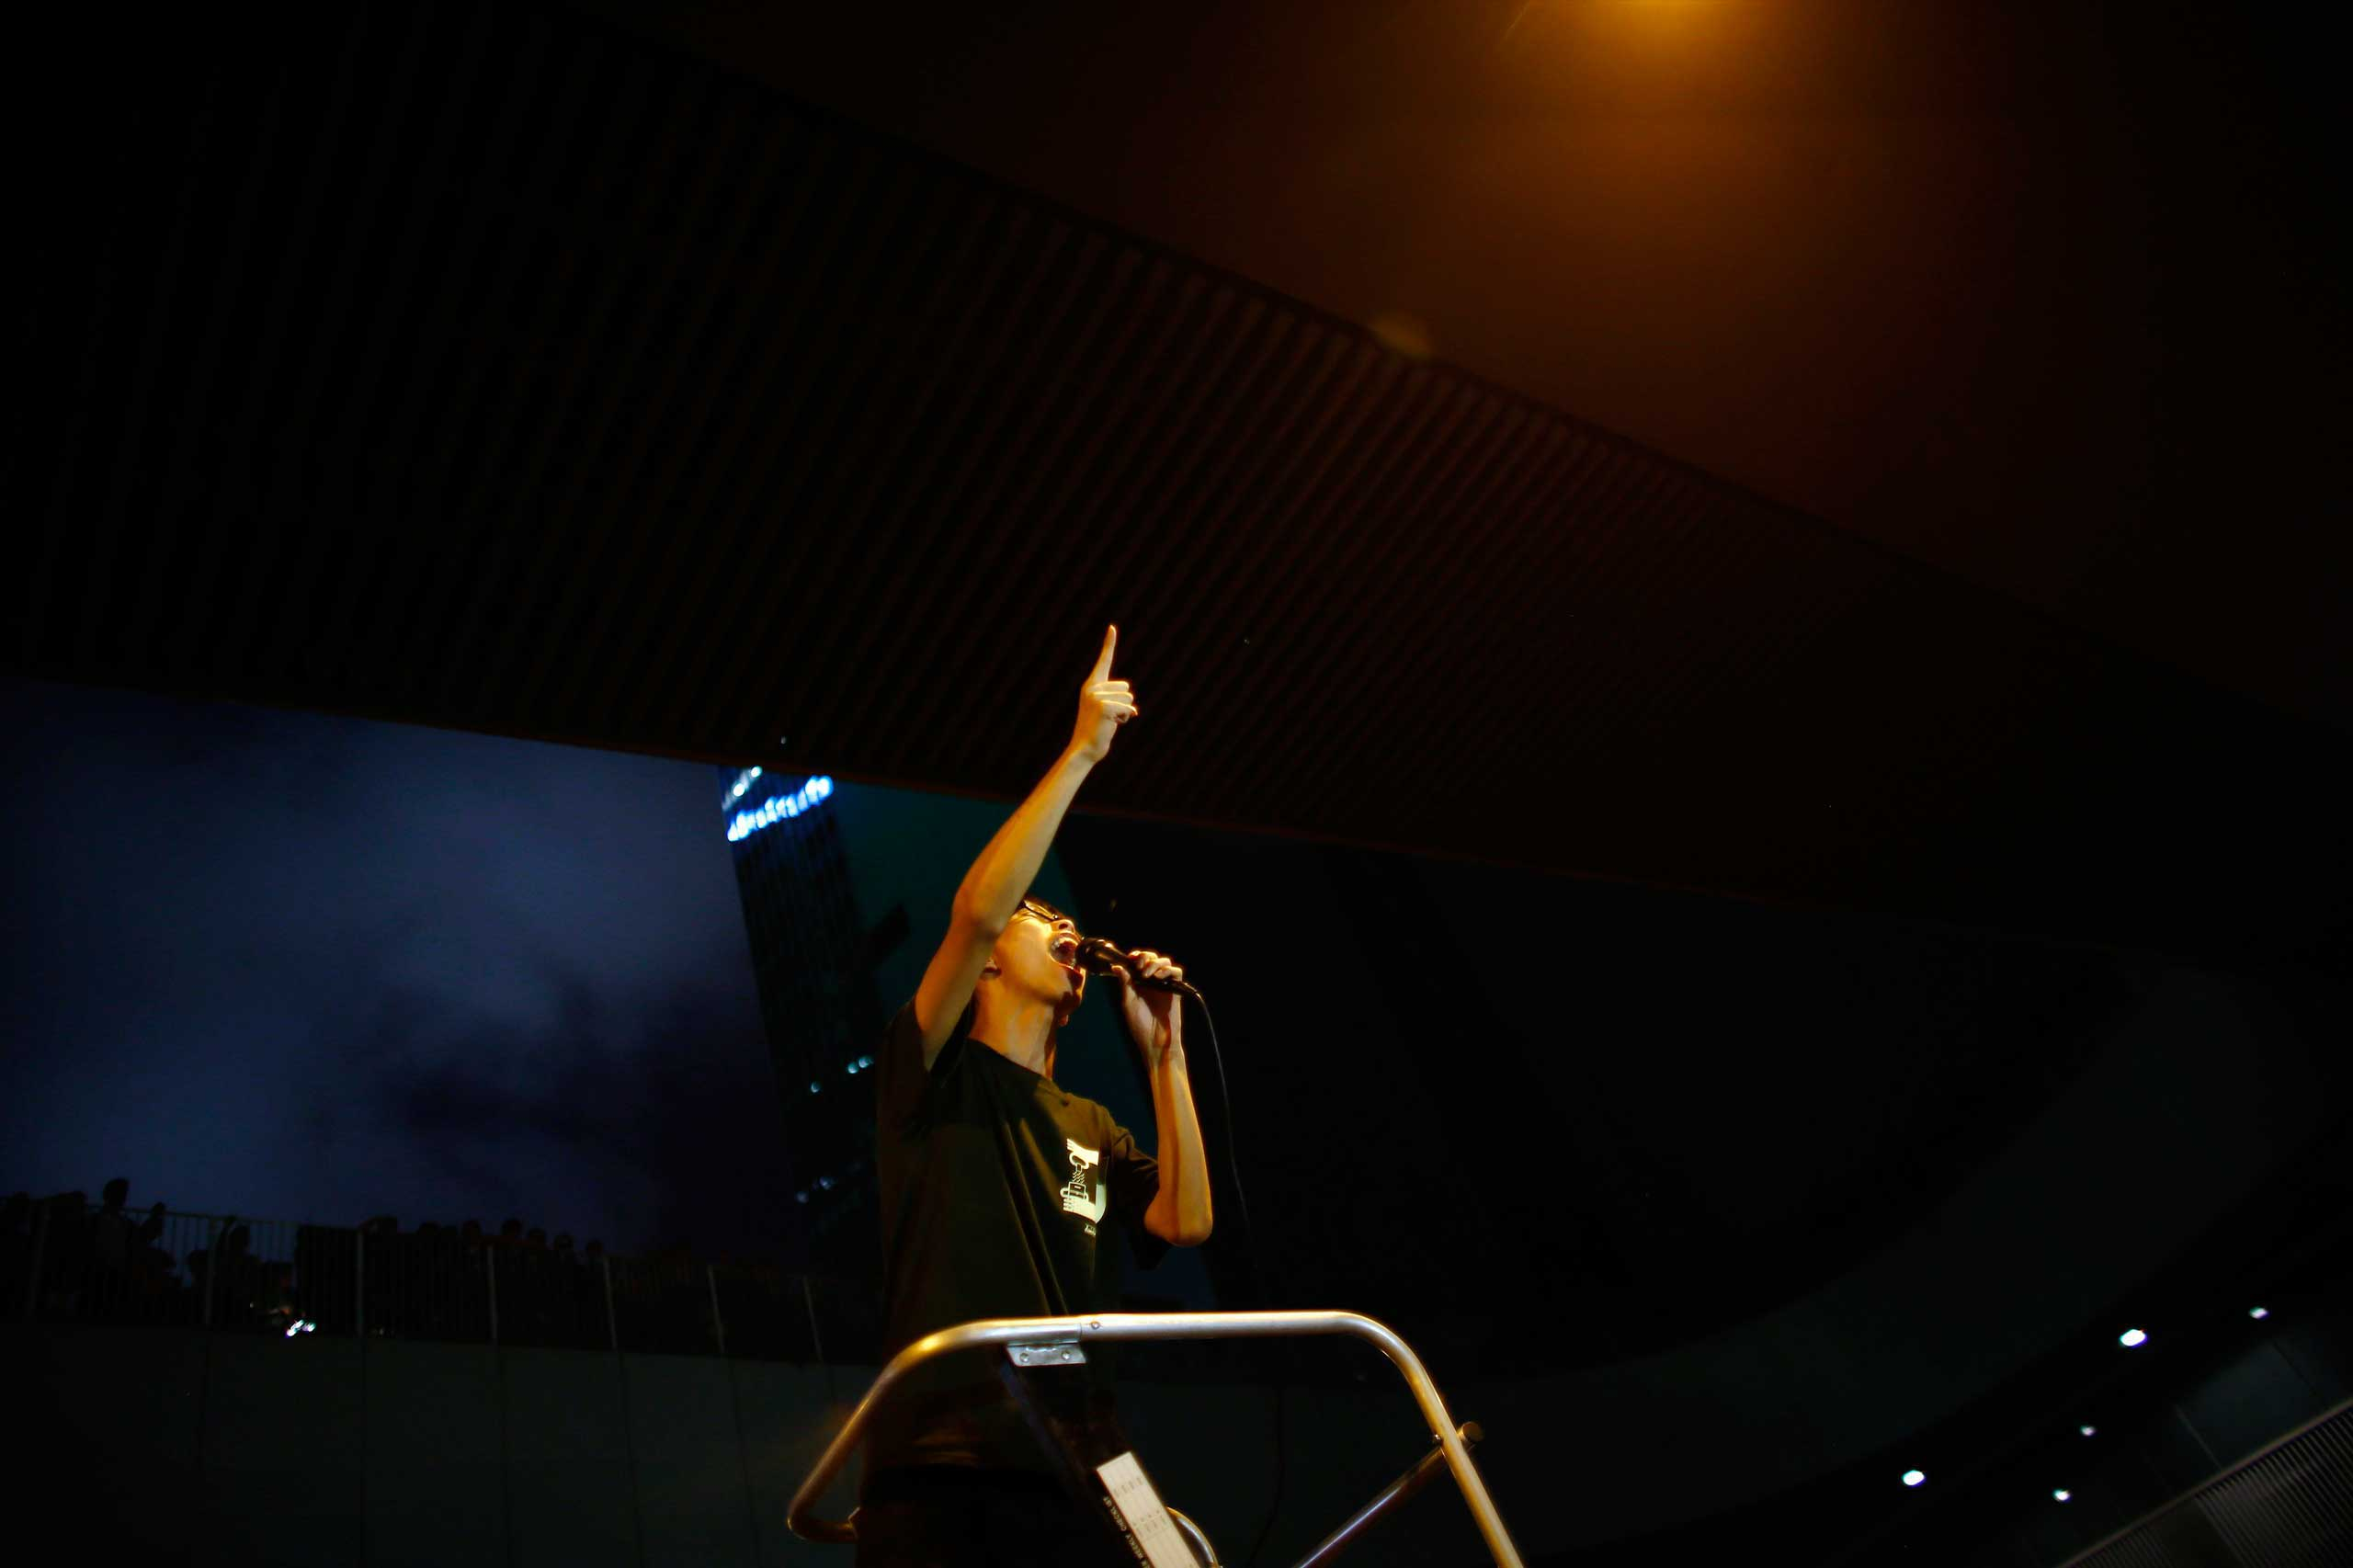 Joshua Wong, leader of the student movement, delivers a speech as protesters block the main street to the financial Central district, outside the government headquarters building in Hong Kong Oct. 1, 2014.